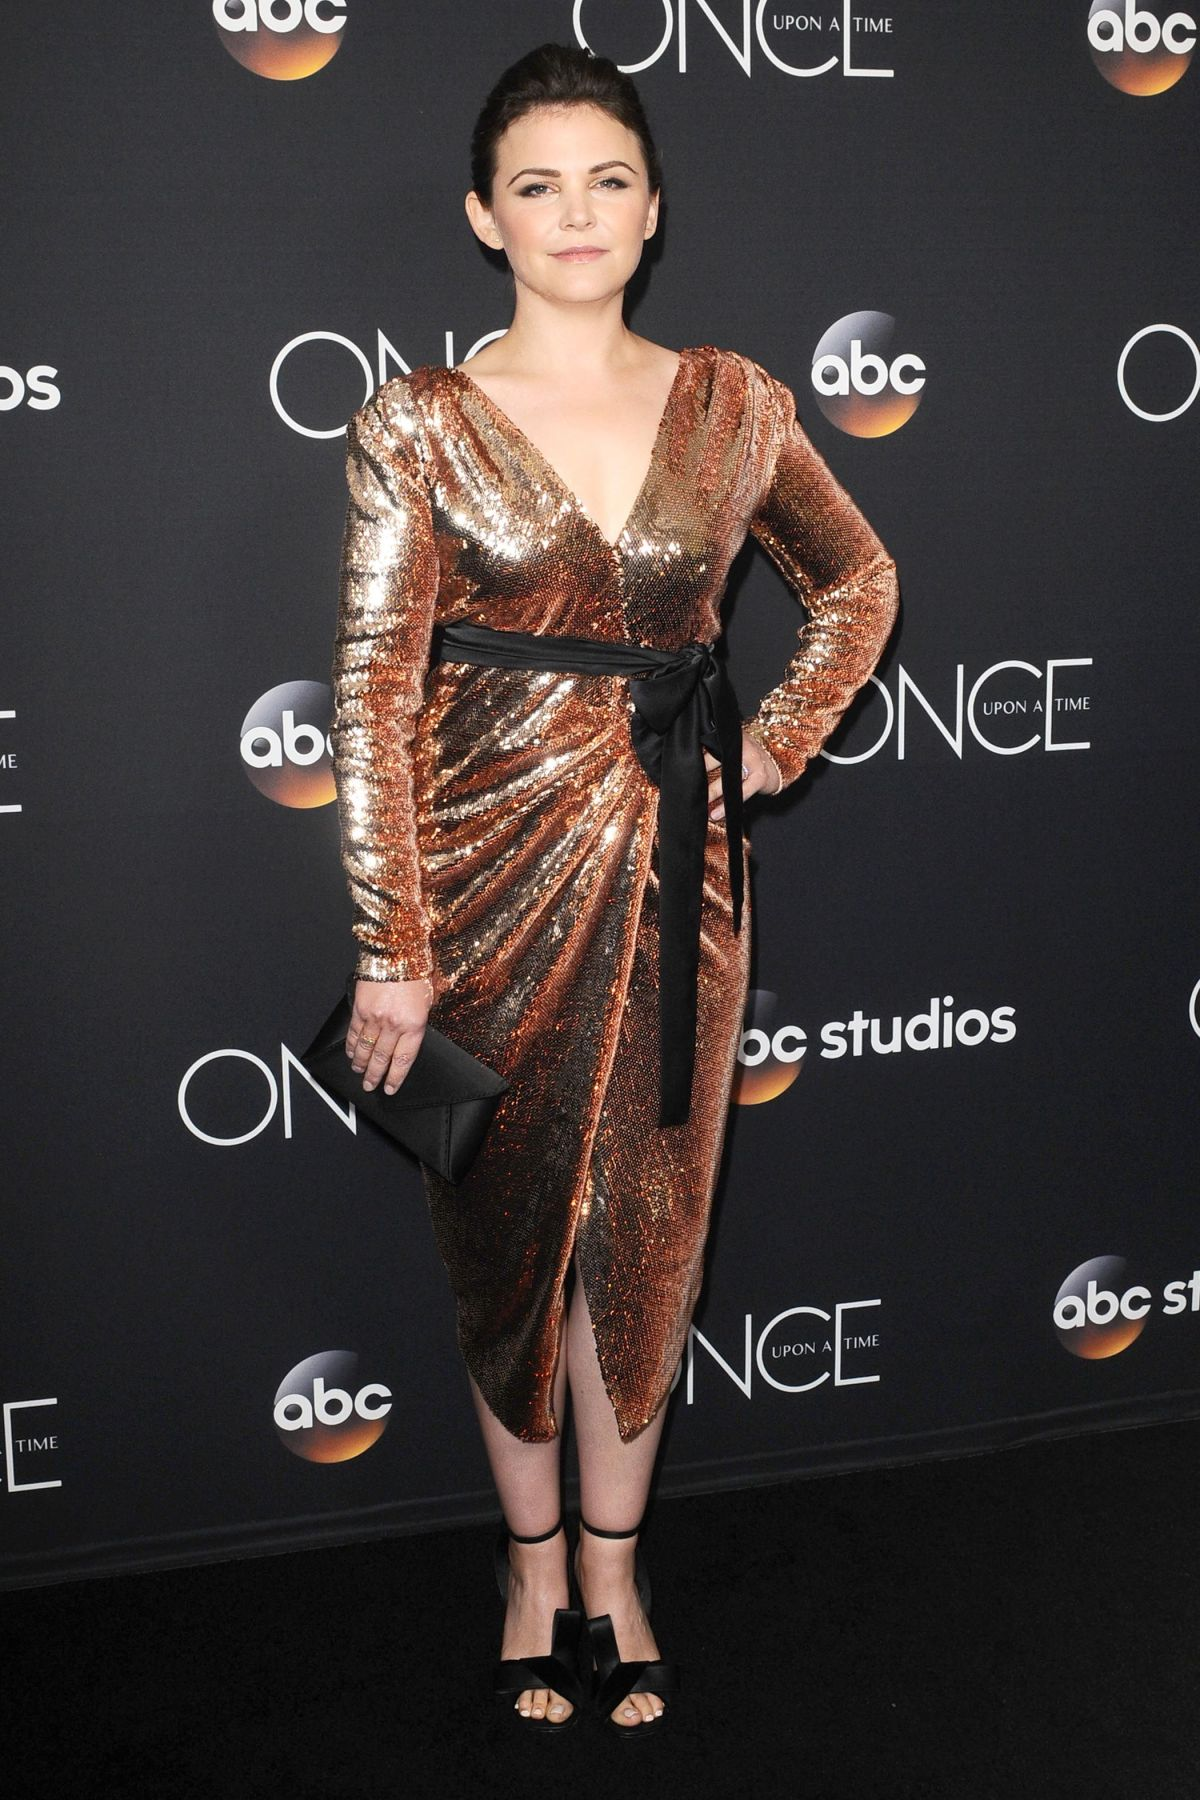 GINNIFER GOODWING at Once Upon A Time Series Finale ...